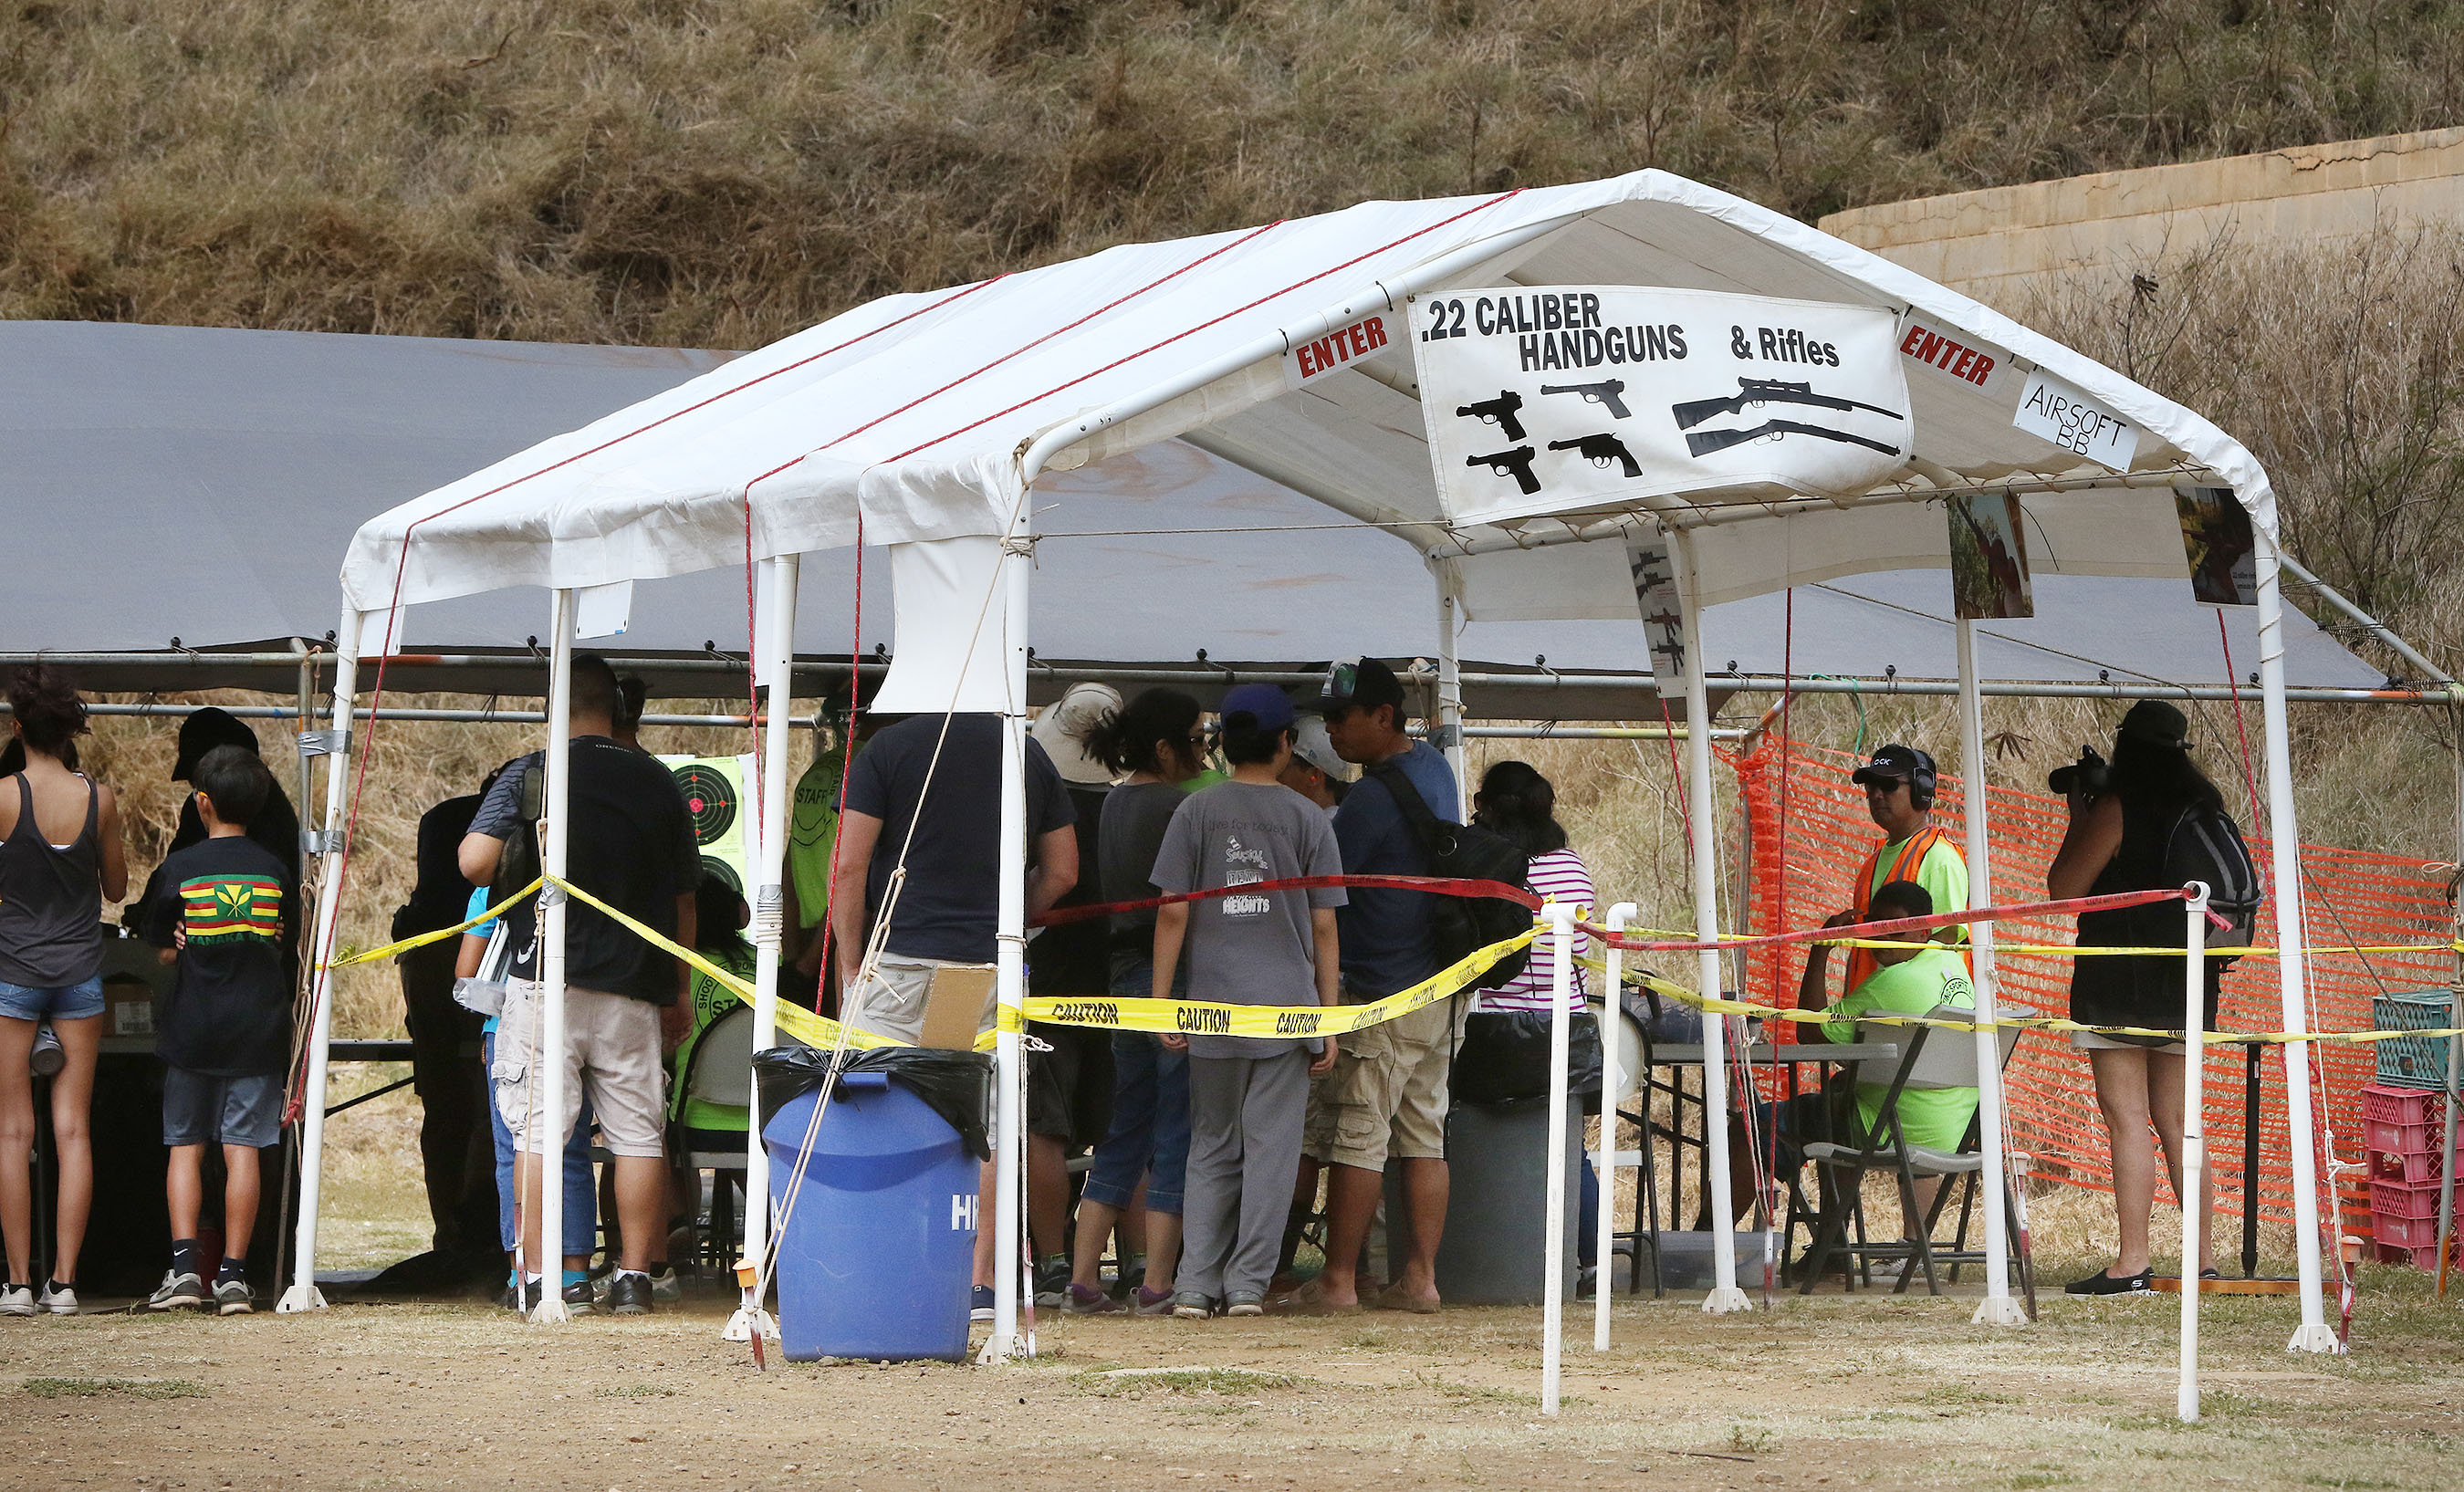 "<p>Scores of people gathered in Hawaii Kai to fire guns at the 23rd annual event. The list of available weapons included tactical shotguns, big game rifles and ""military small arms,"" according to promotional material.</p>"